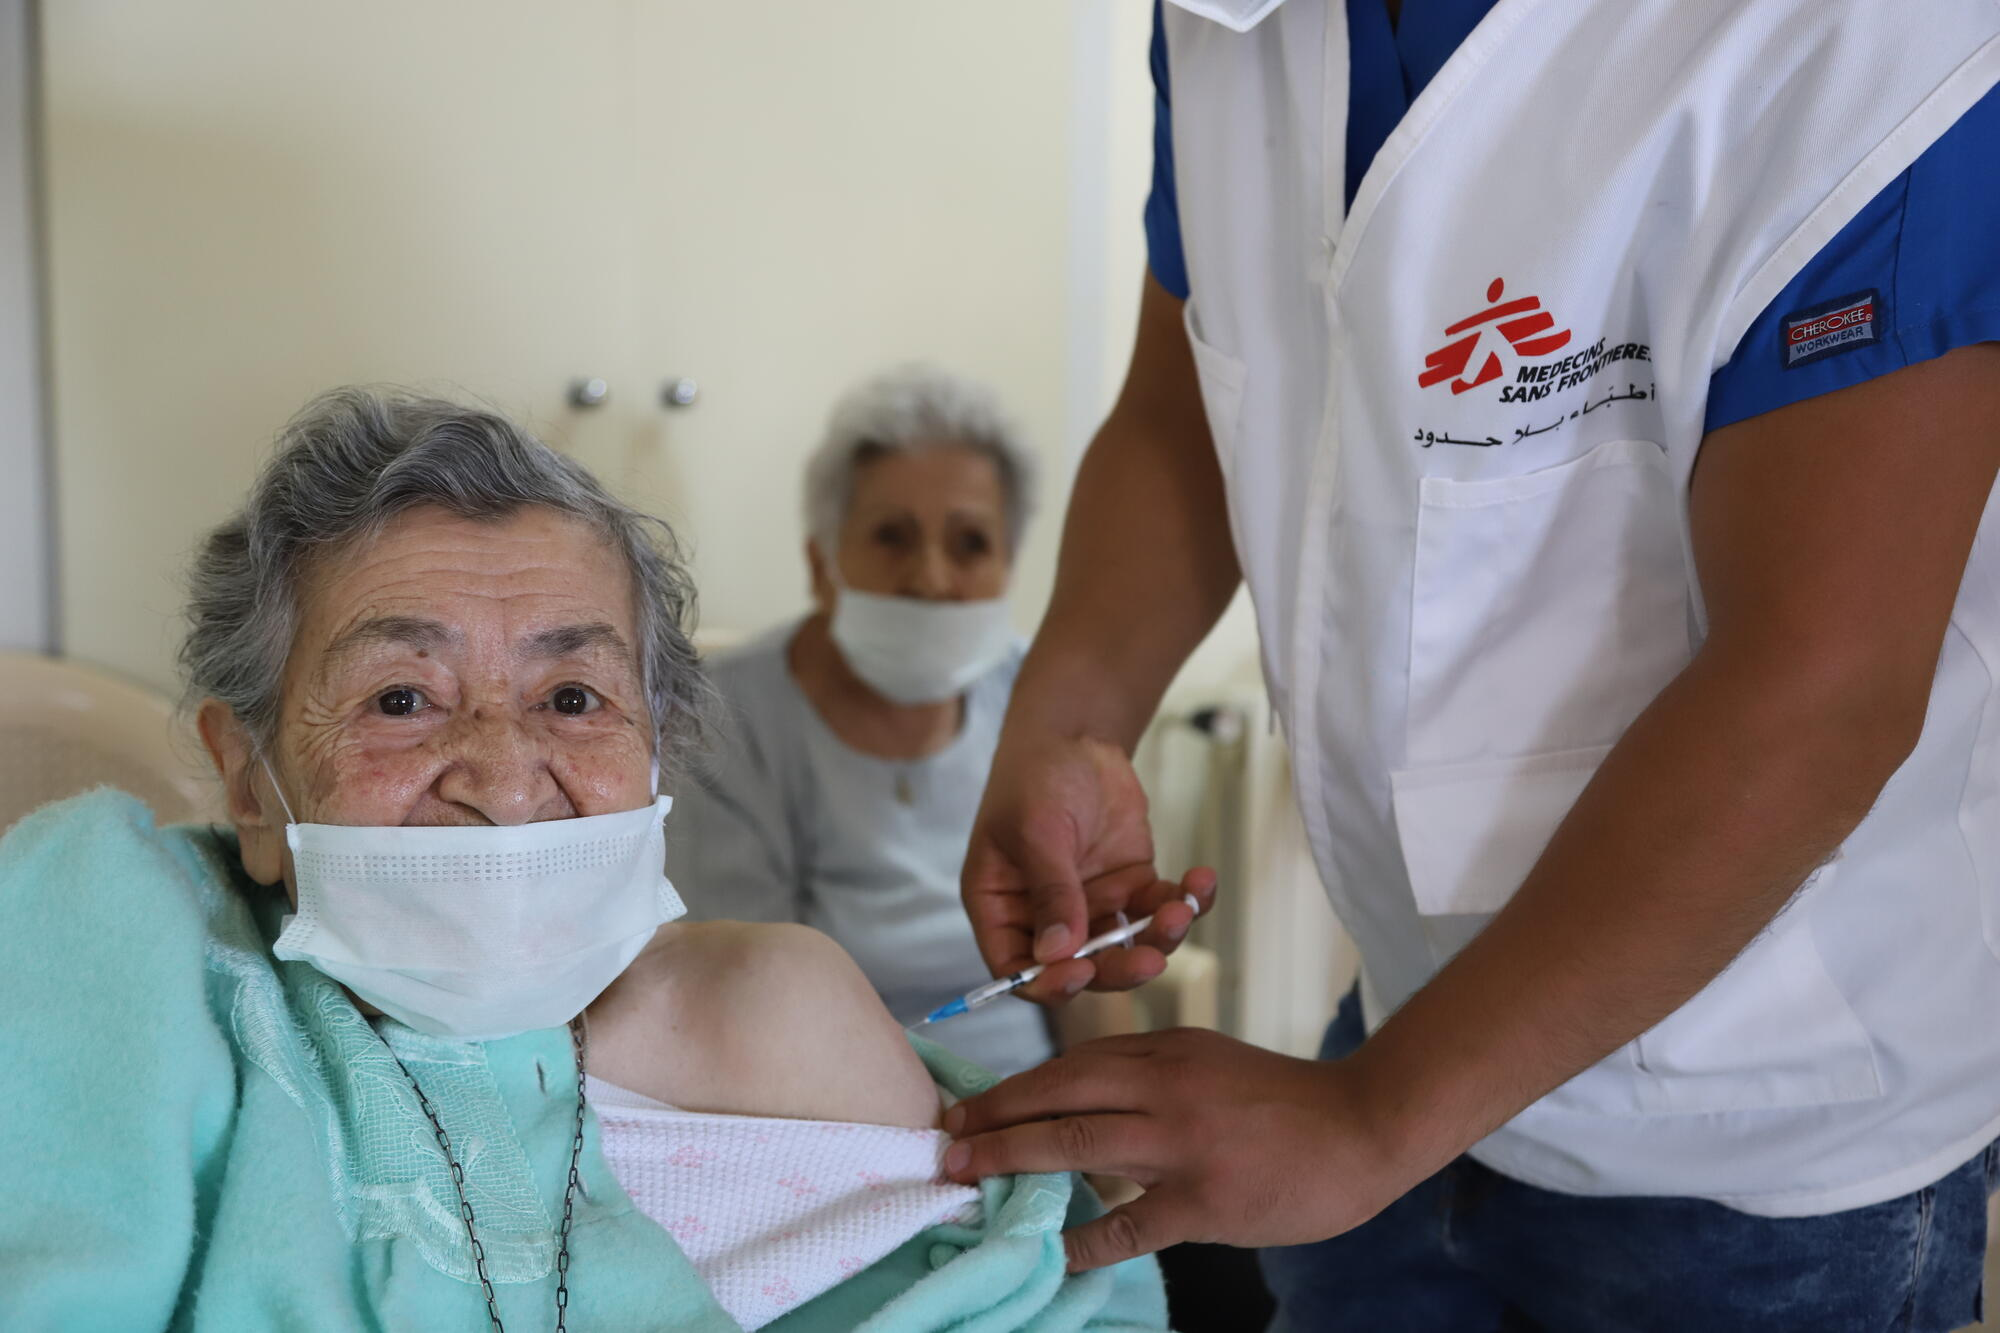 Tackling COVID-19 in Lebanon, through prevention and vaccination